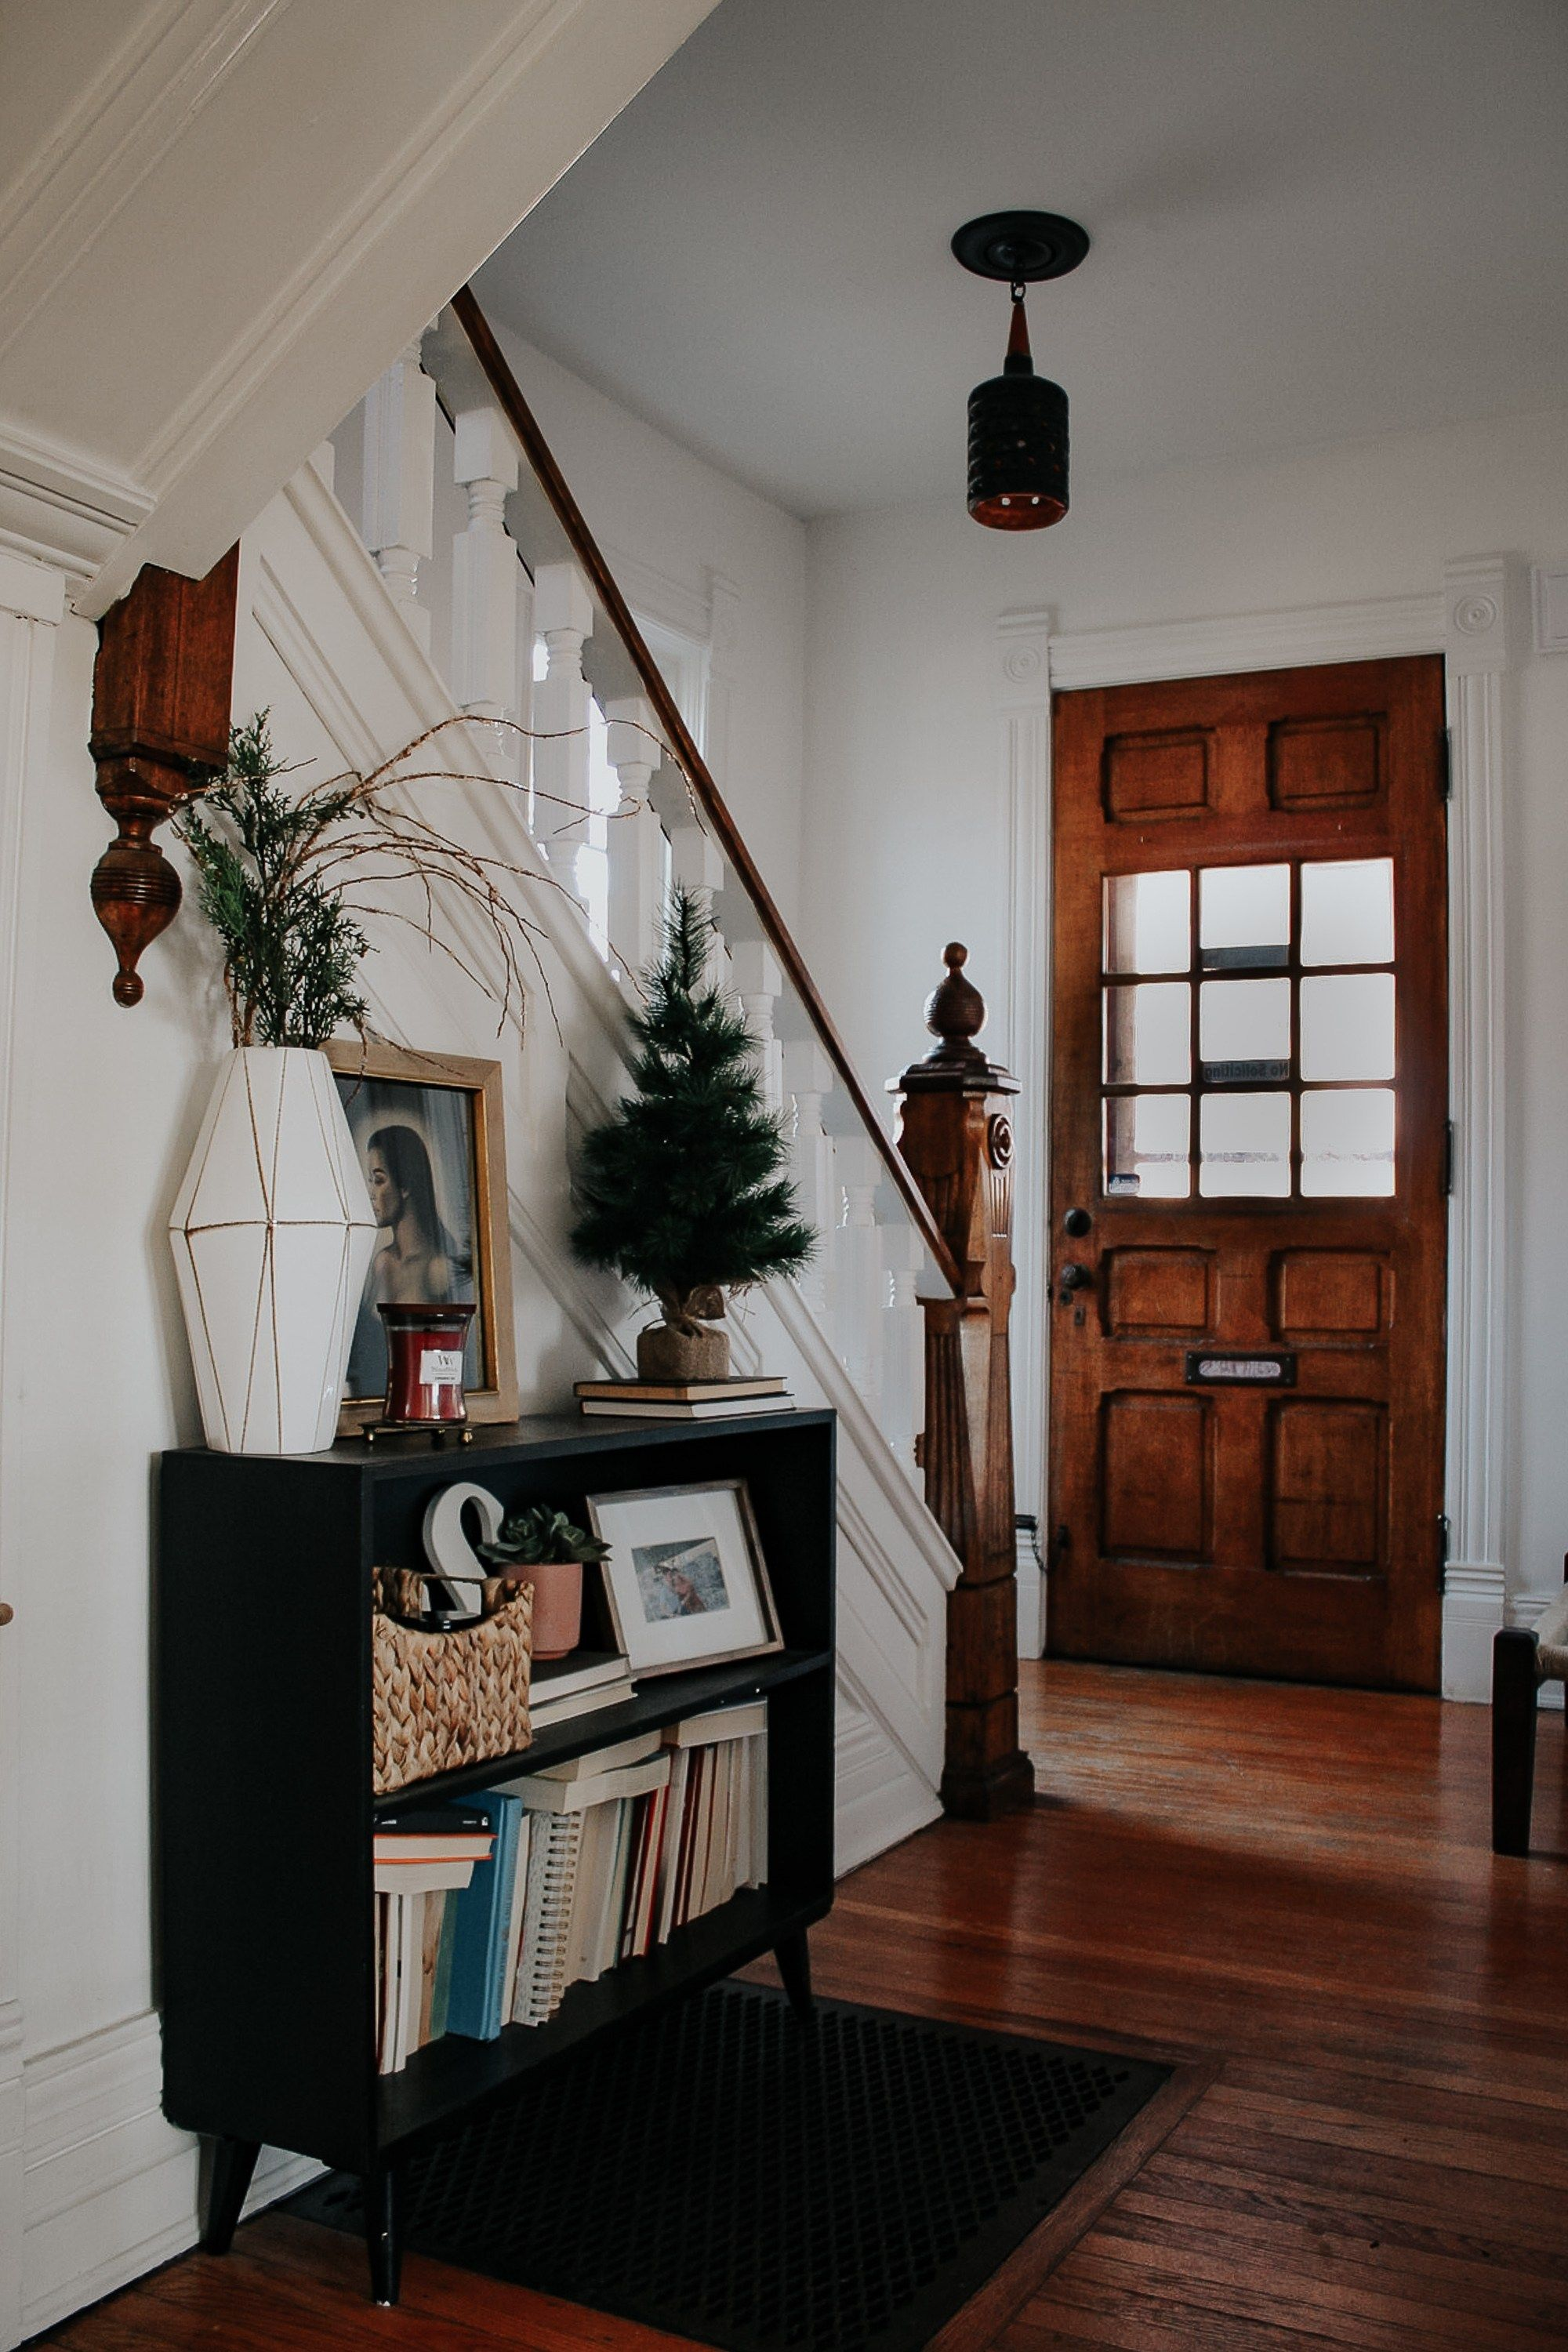 A Modern Moody Victorian Home At Christmas Miranda Schroeder Victorian Homes Modern Victorian Homes Vintage Home Decor